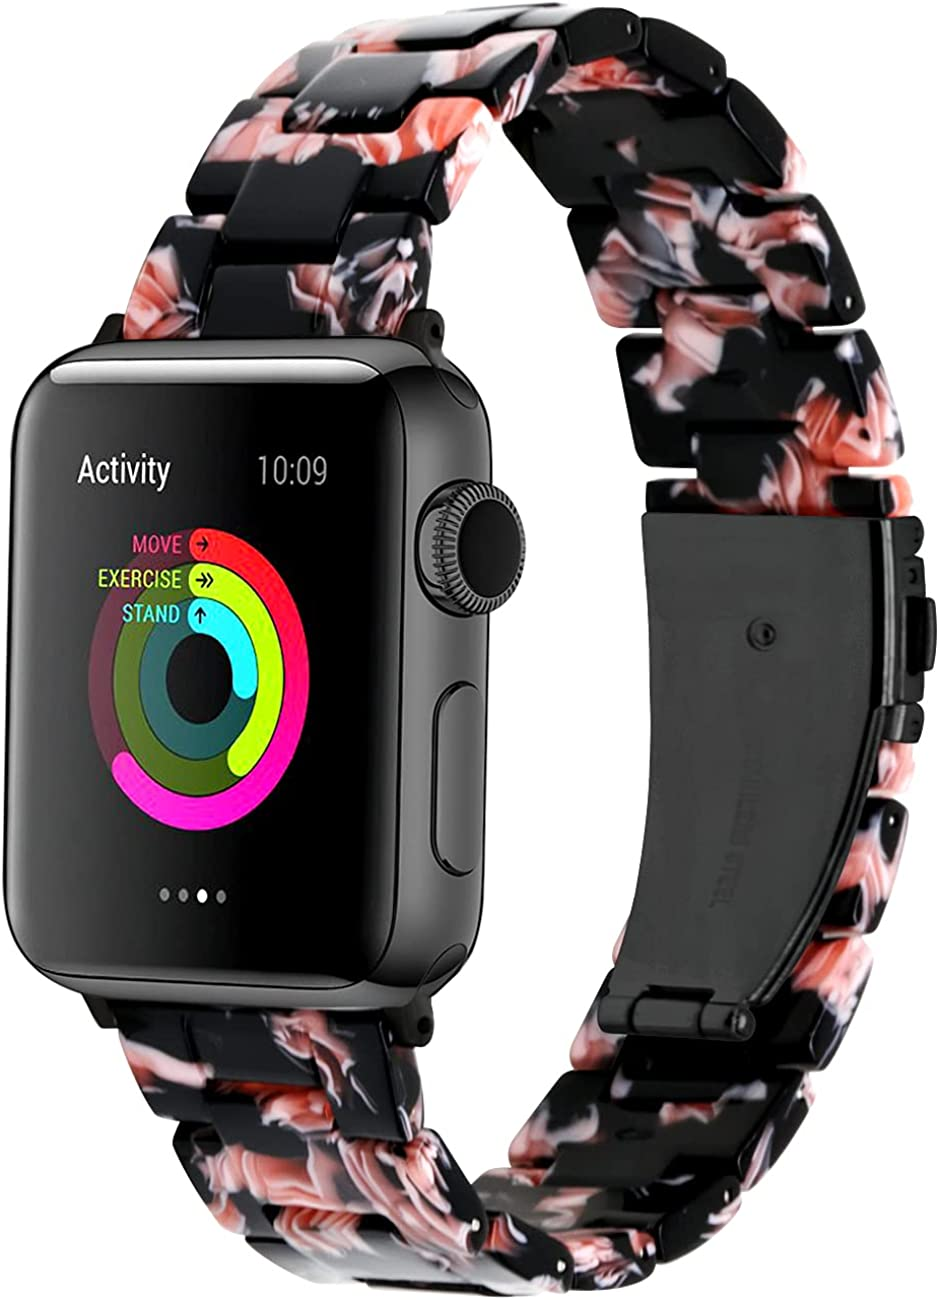 Yingshi Resin Watch Band Compatible for Apple Watch 38mm 40mm 42mm 44mm Replacement Bracelet for Women Men Watch Strap Compatible with iWatch Series 6 SE 5 4 3 2 1